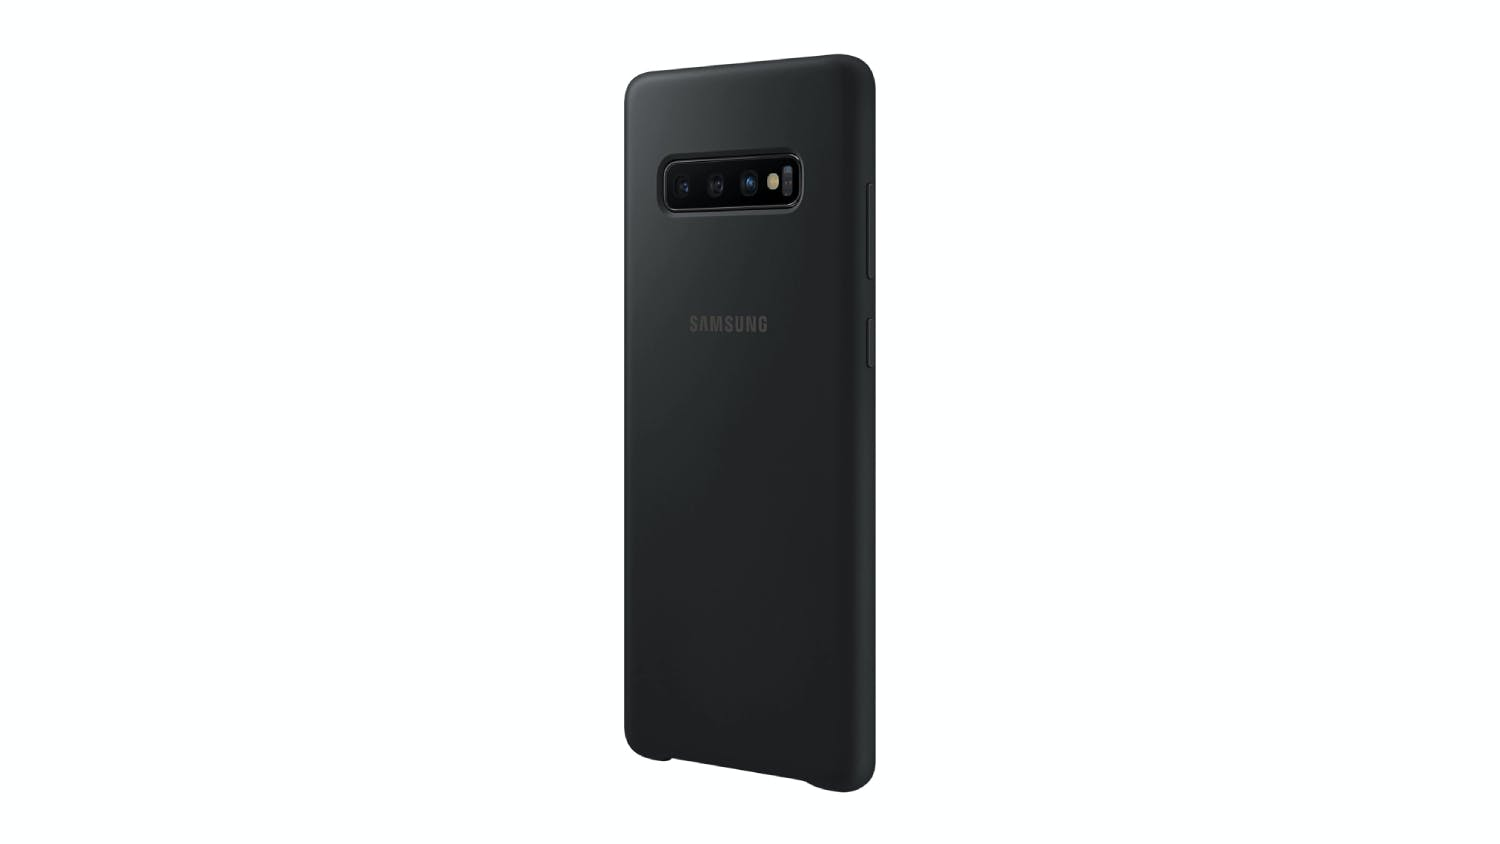 Samsung Galaxy S10+ Silicone Cover Case in Black